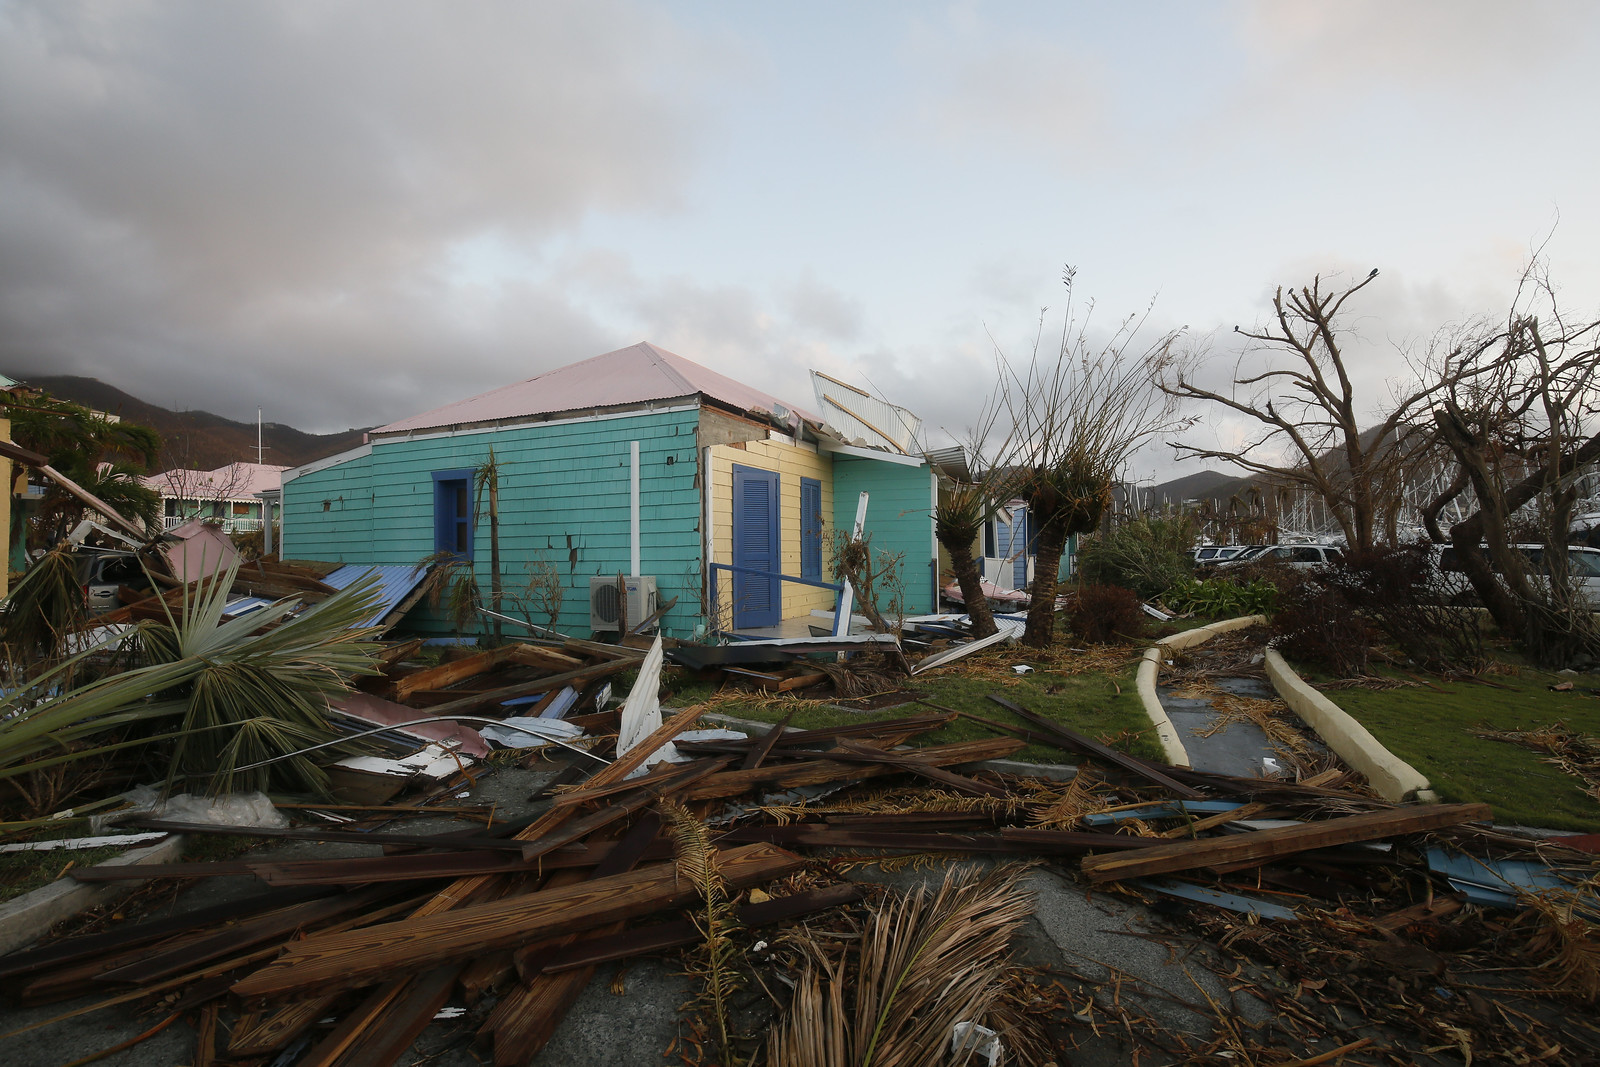 Damage to buildings caused by Hurricane Irma in Nanny Cay on the British Virgin Island of Tortola. The Caribbean island suffered widespread damage and destruction when Hurricane Irma passed over on 6 September 2017.